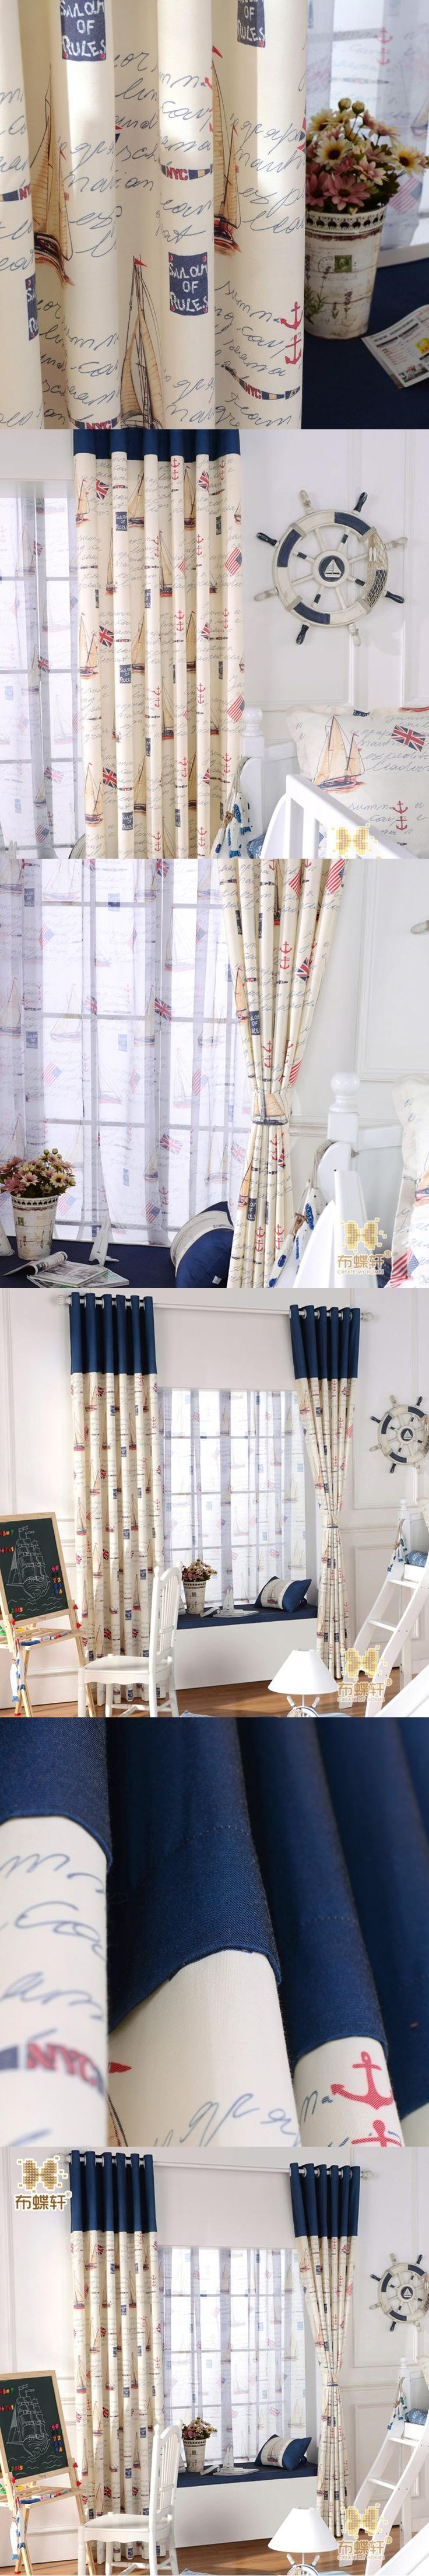 Mediterranean Sails Boat Cartoon Children's Bedroom Eco-Friendly Curtains for Boys Fabric Blue Stitching Kids Curtain